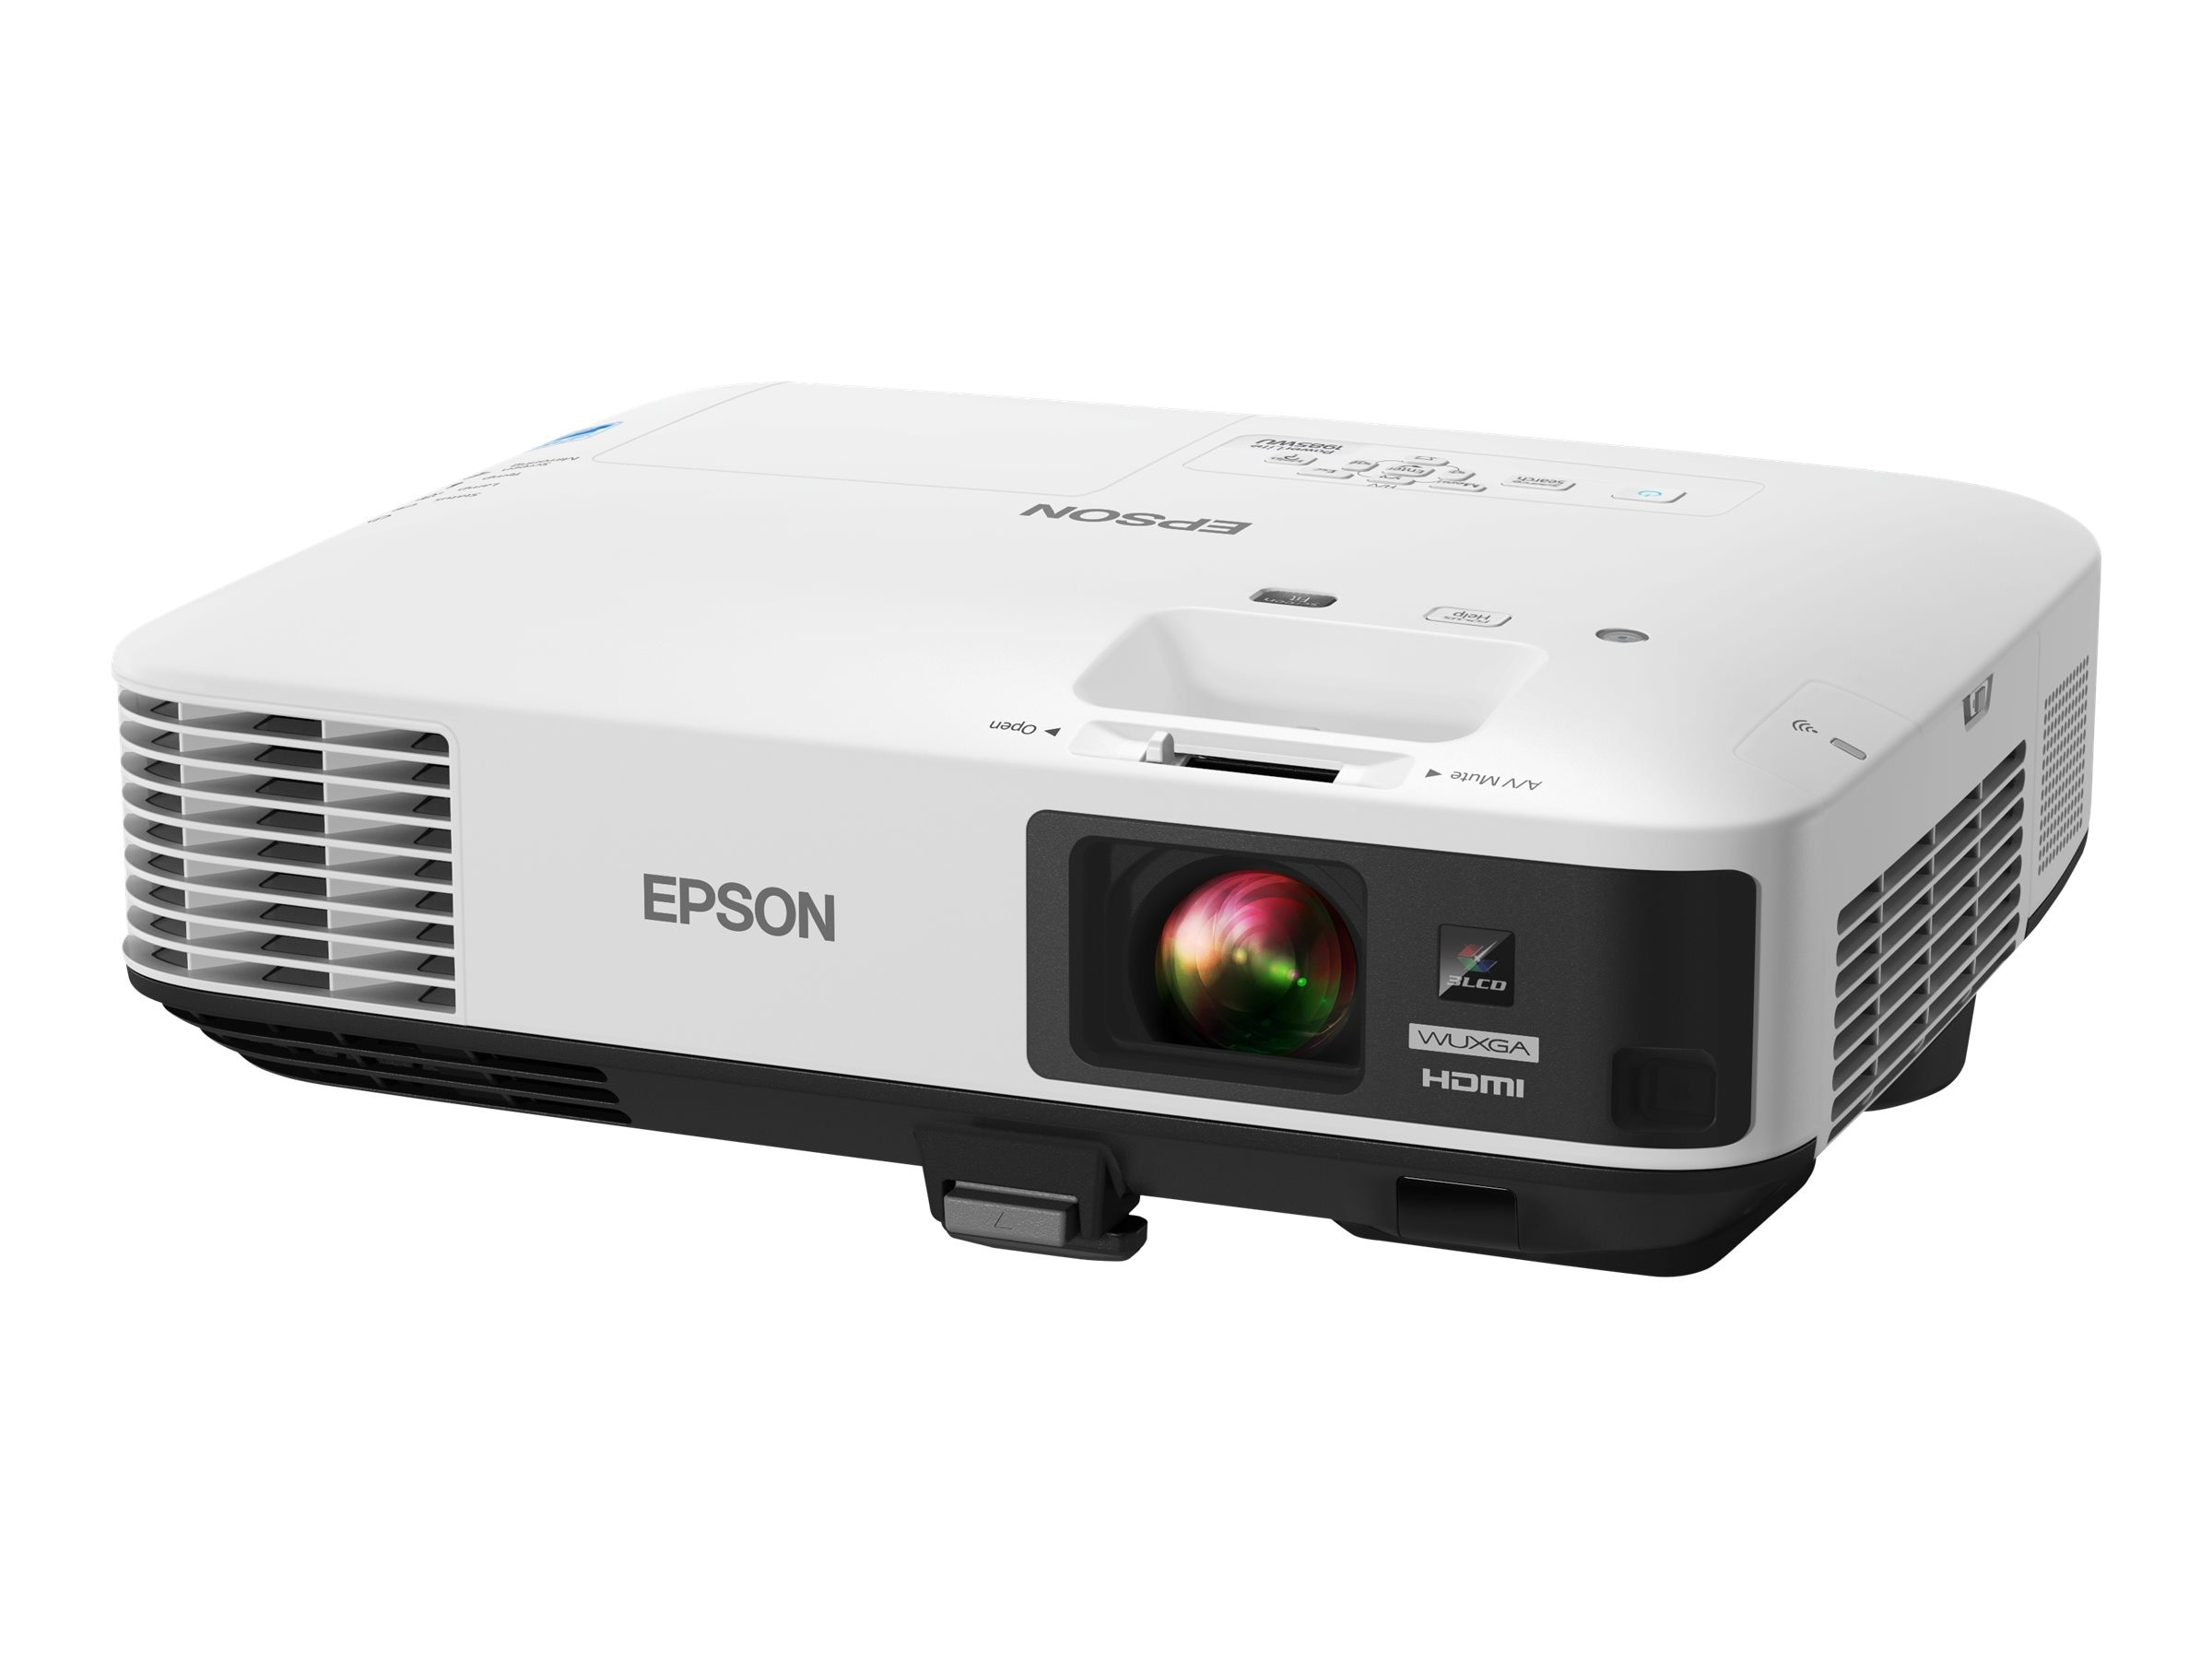 Epson PowerLite 1985WU WUXGA Wireless 3LCD Projector, 4800 Lumens, White, V11H619020, 17543132, Projectors